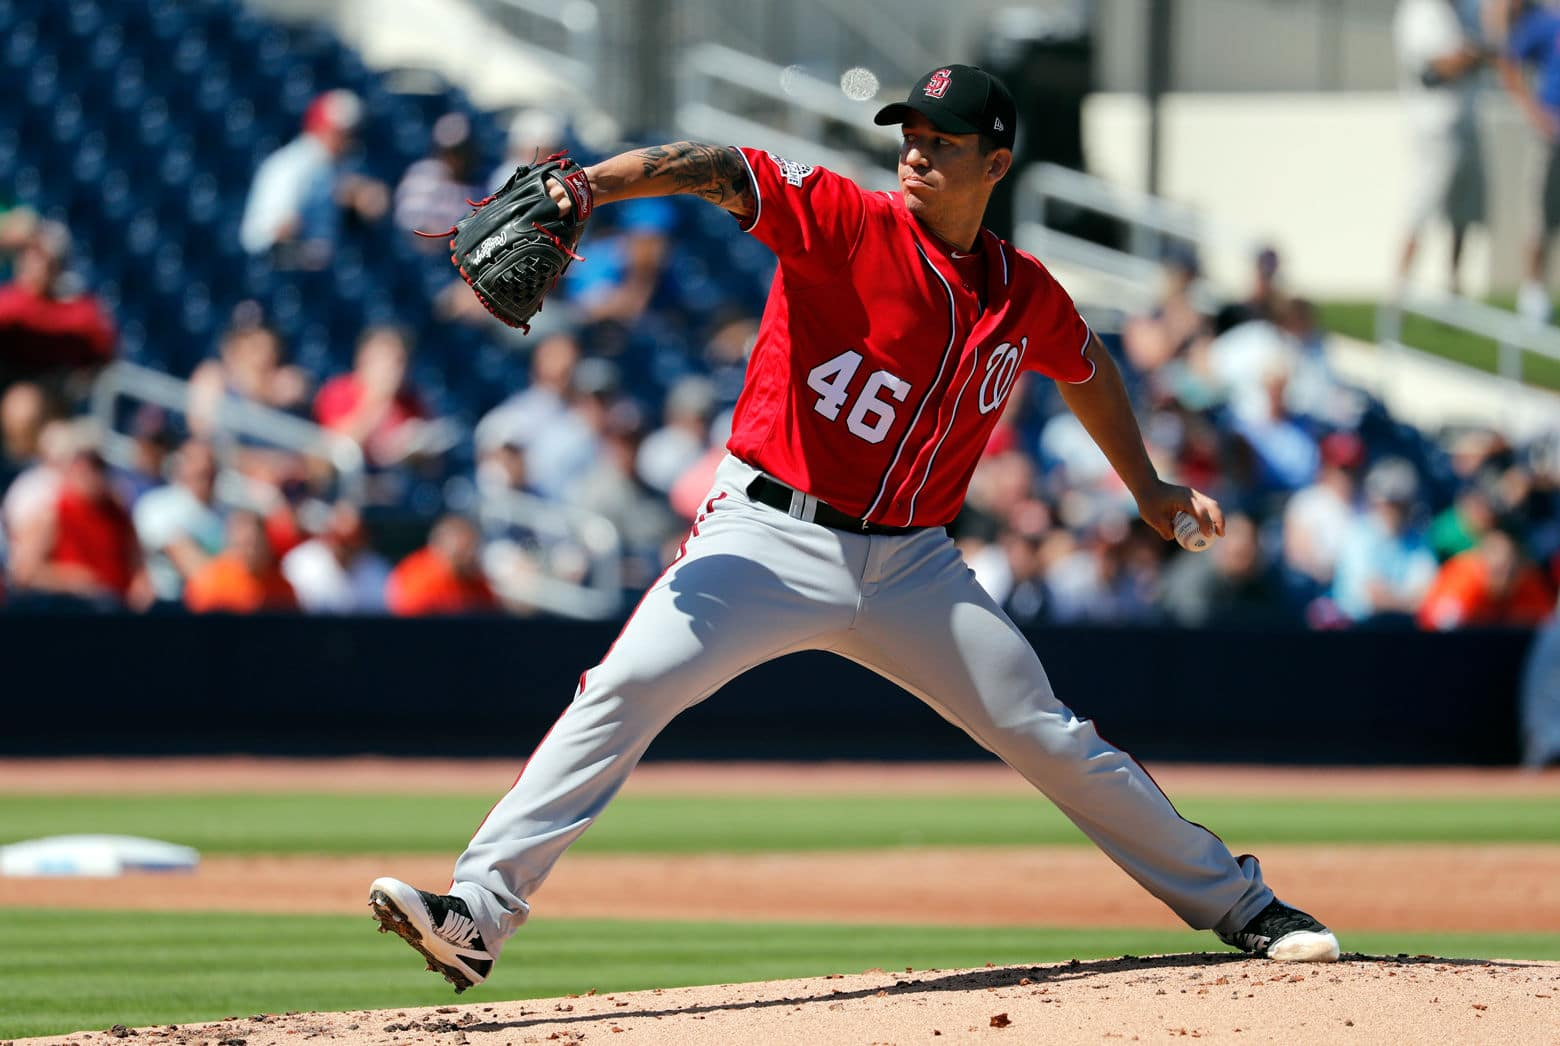 Washington Nationals pitcher Tommy Milone throws during the first inning of an exhibition spring training baseball game against the Houston Astros Friday. (AP Photo/Jeff Roberson)